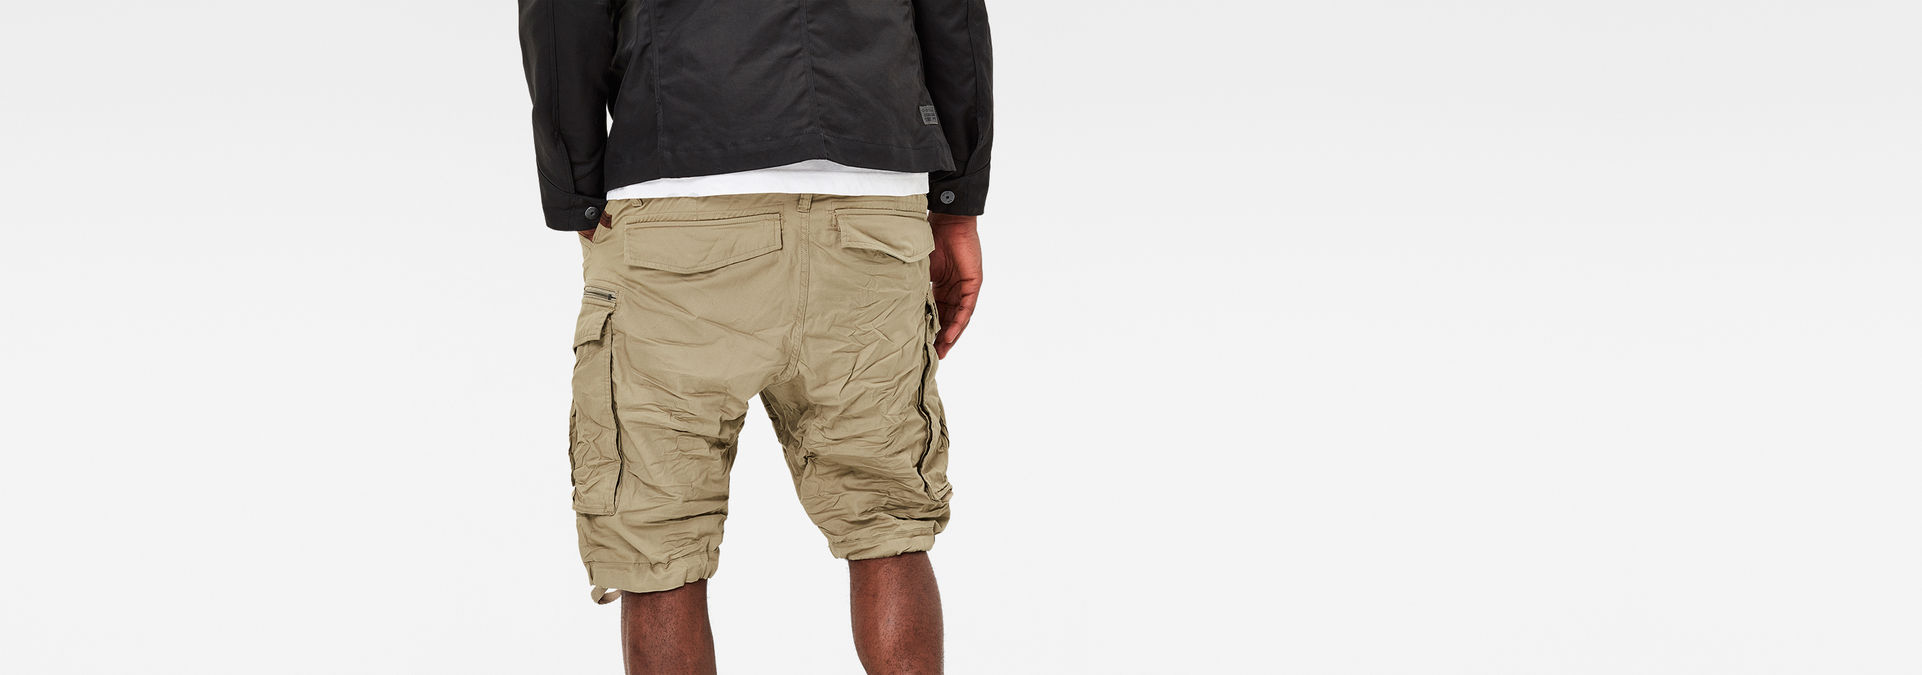 fab0195ed3 ... G-Star RAW® Rovic Zip 1/2 Shorts Beige model back ...